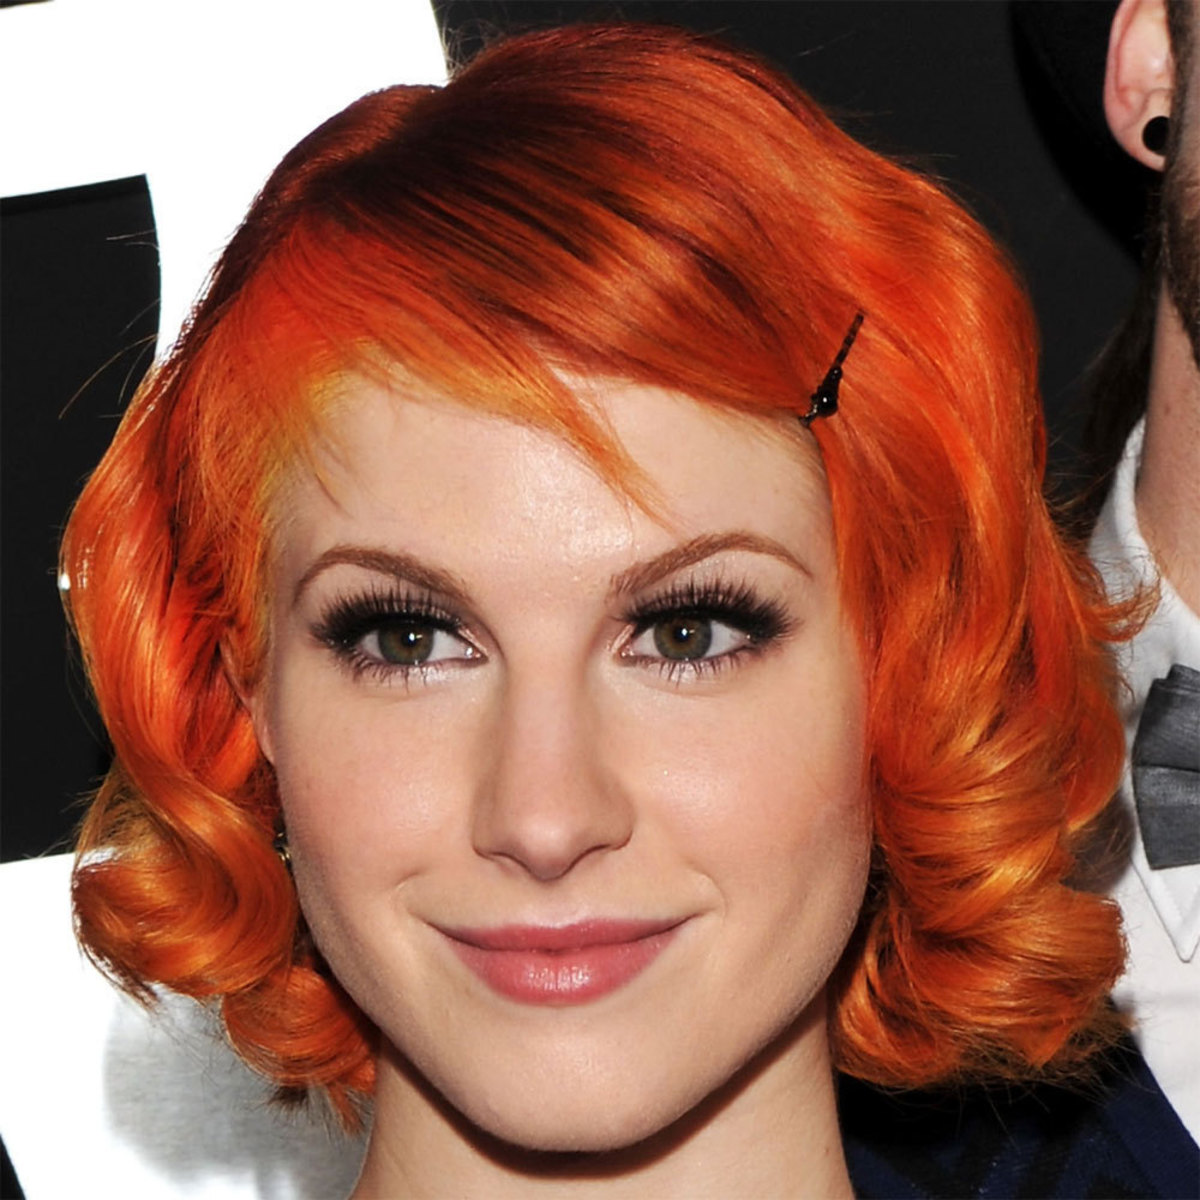 How To Color Your Hair Orange At Home Without Using Chemical Dyes